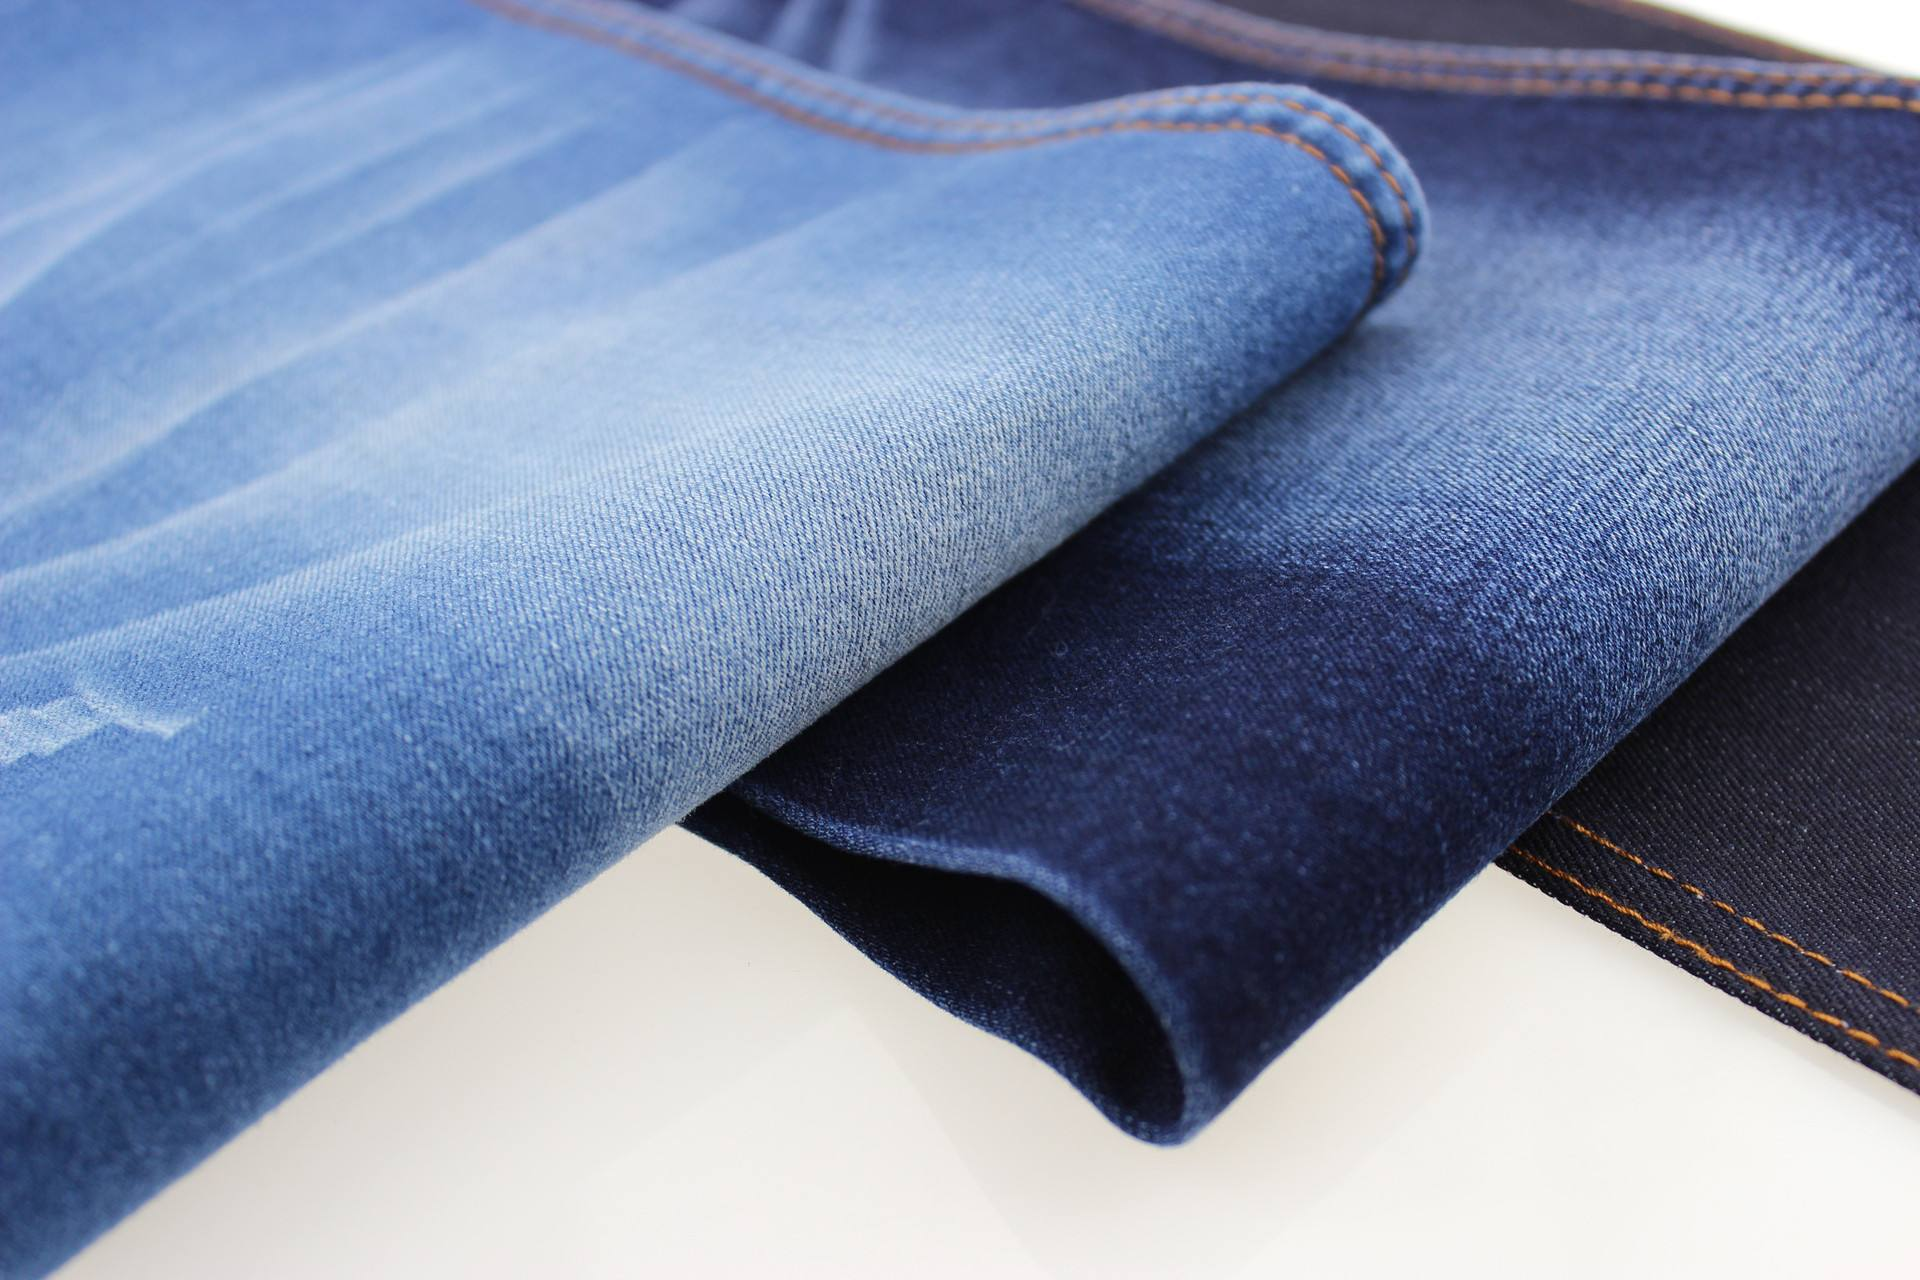 classification of denim fabrics and mens super skinny jeans-Xincheng Jeans